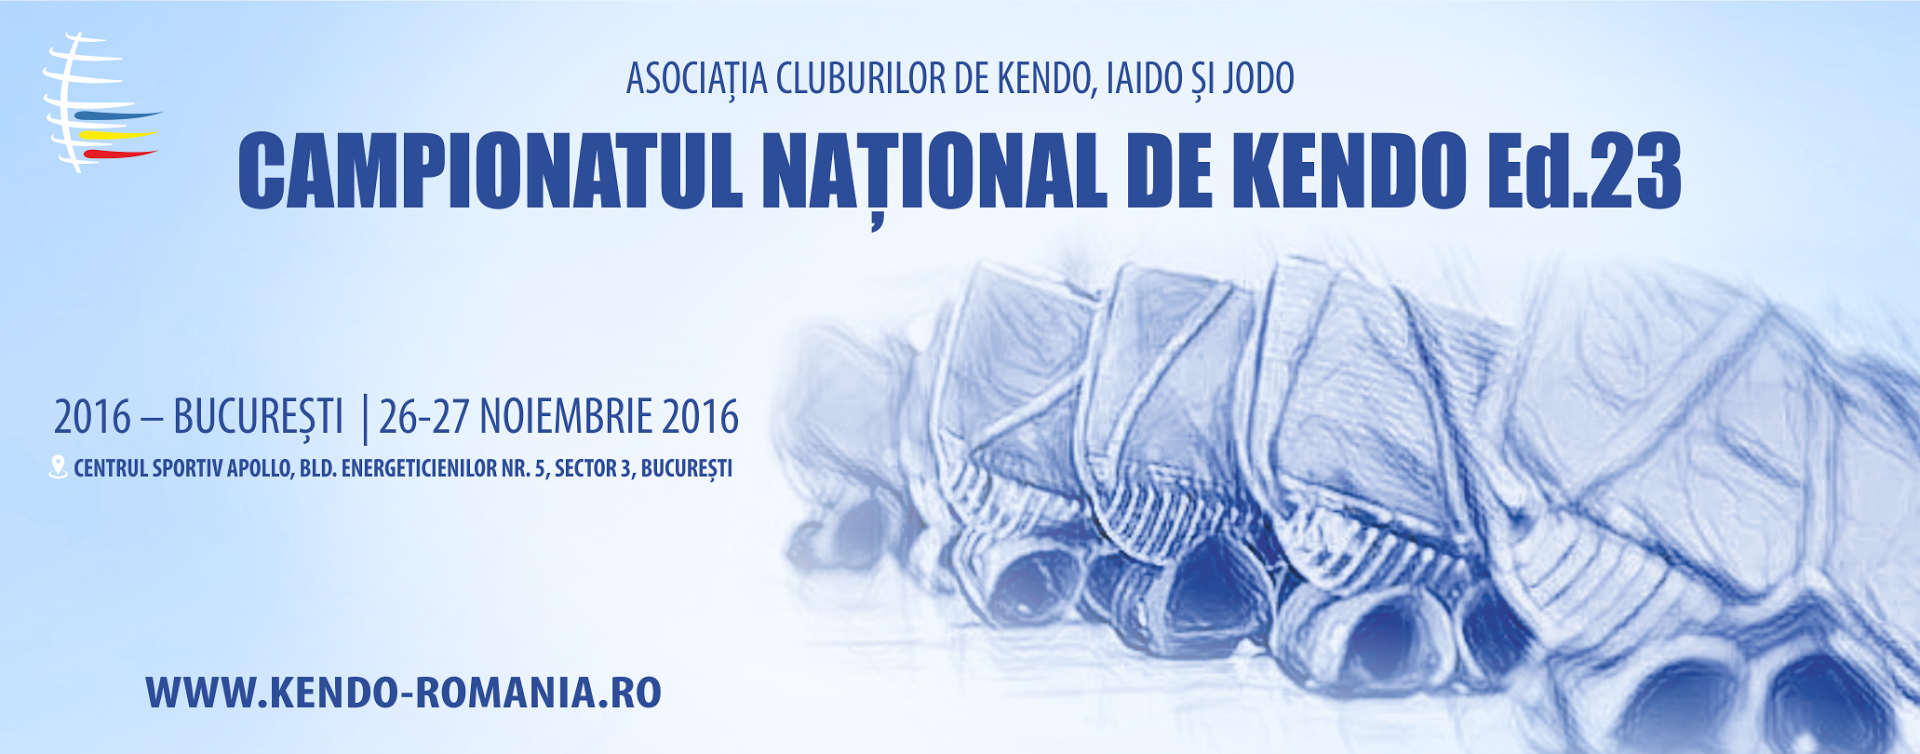 campionatul national 2016